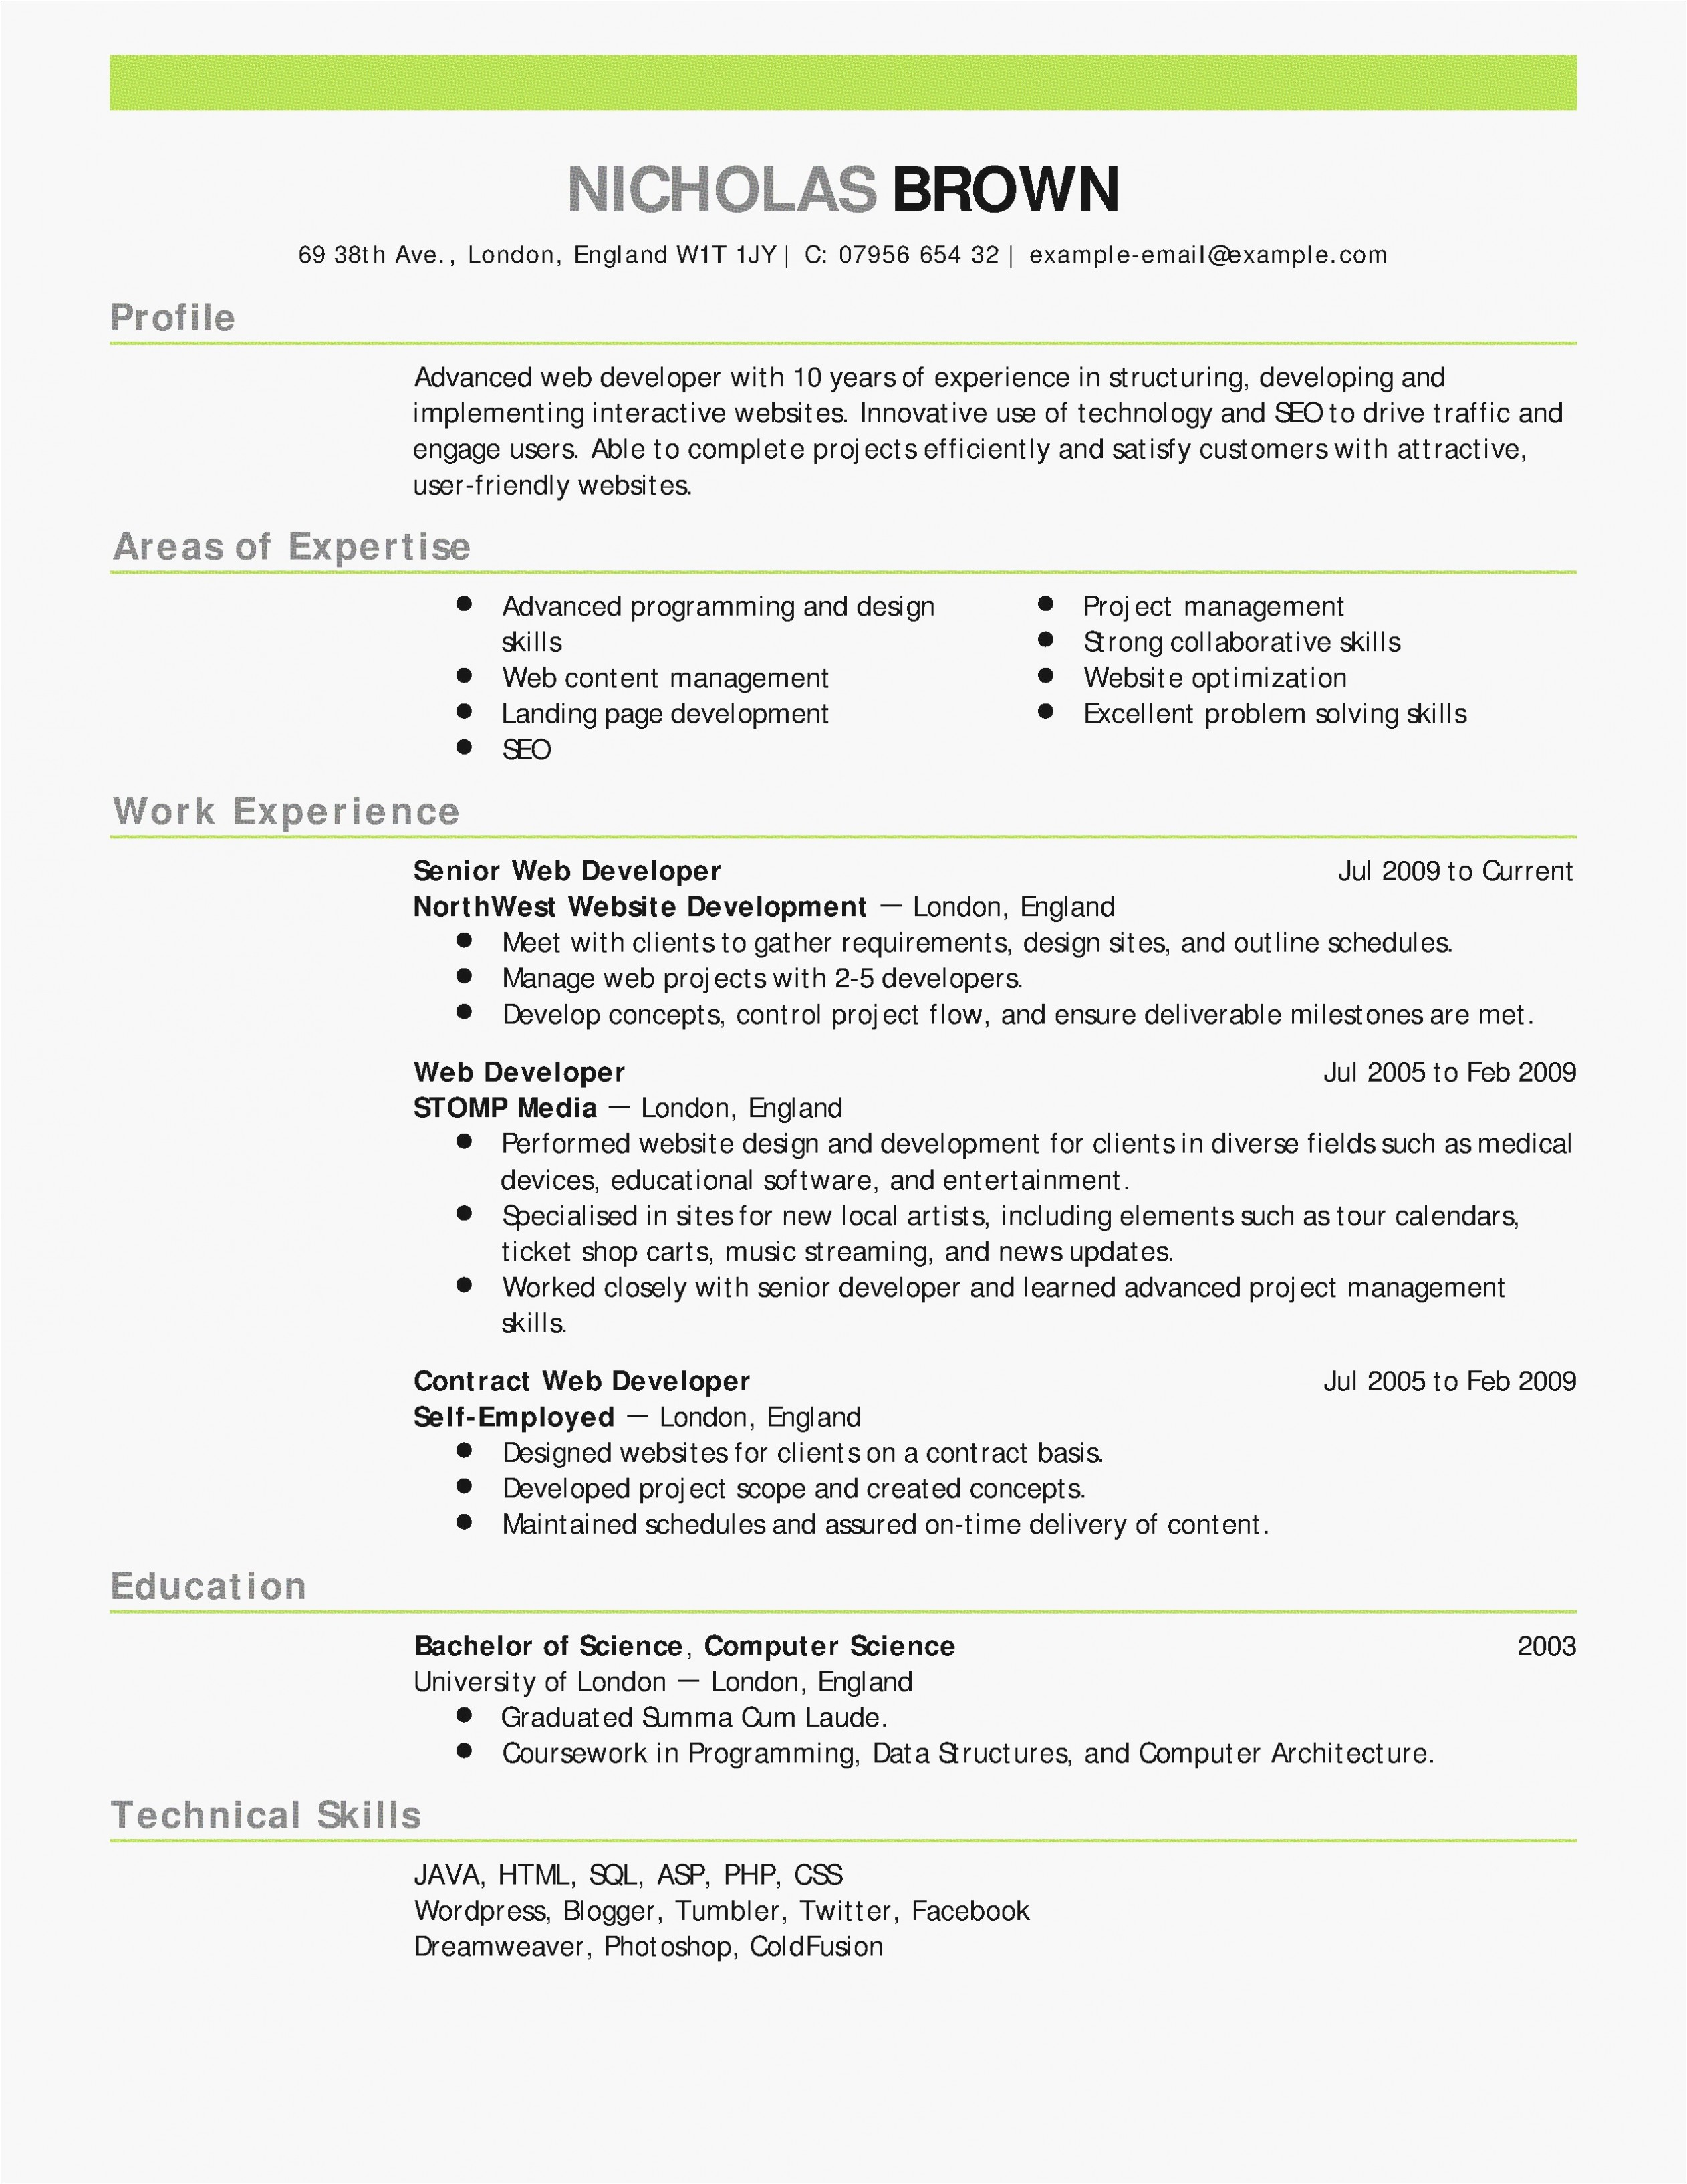 Public Speaking On Resume - Letter Agreement Template Download